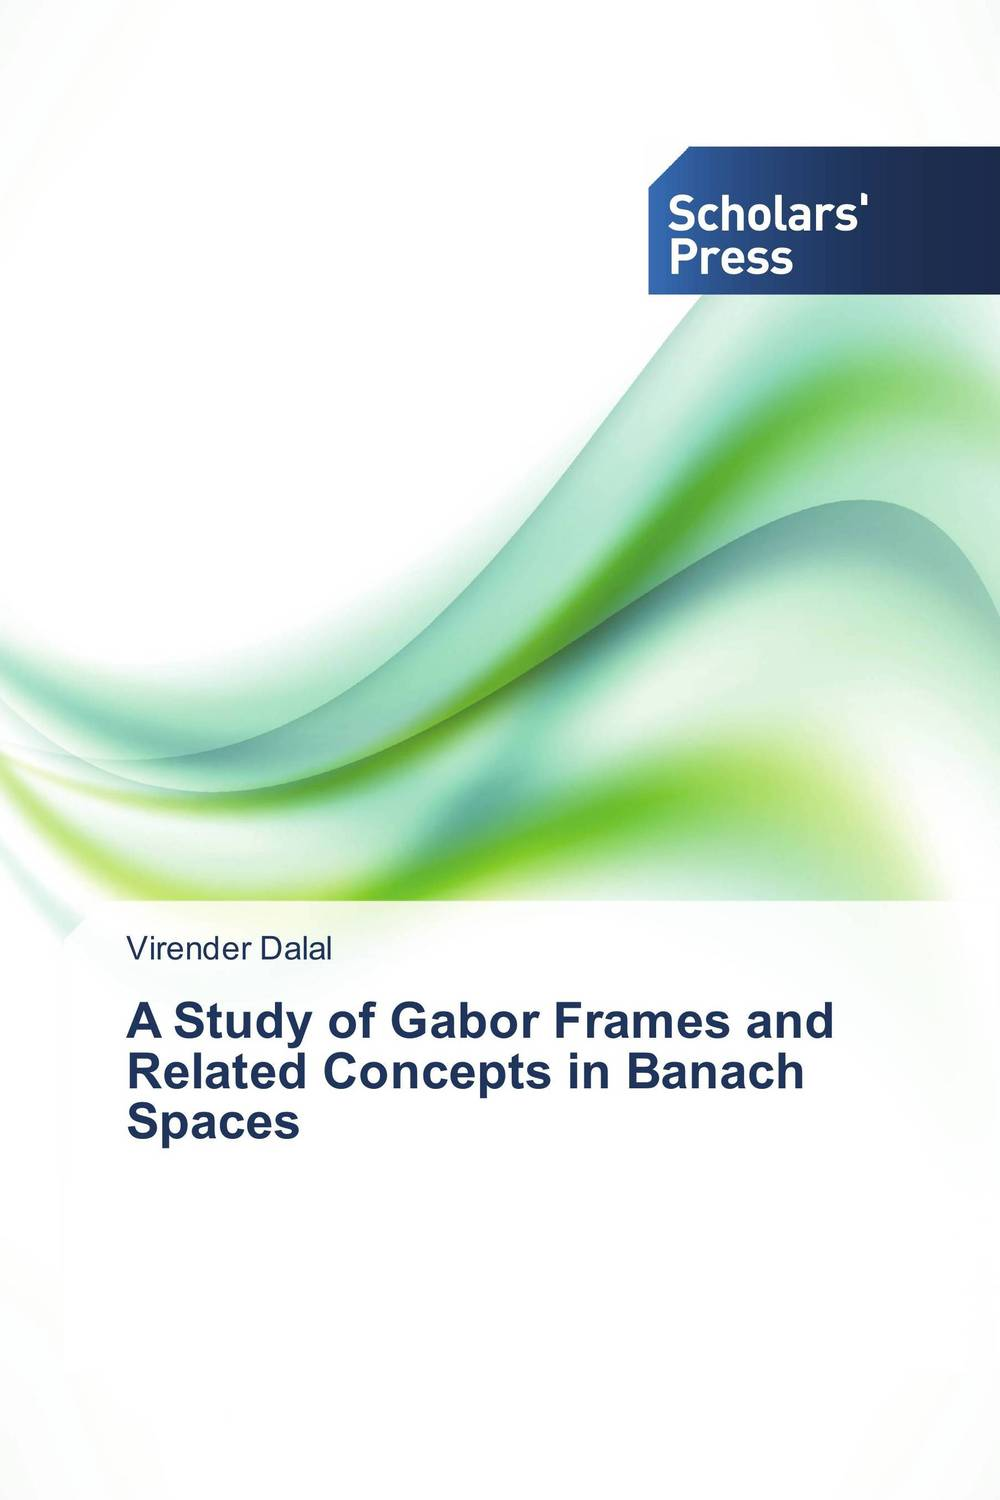 A Study of Gabor Frames and Related Concepts in Banach Spaces module amenability of banach algebras